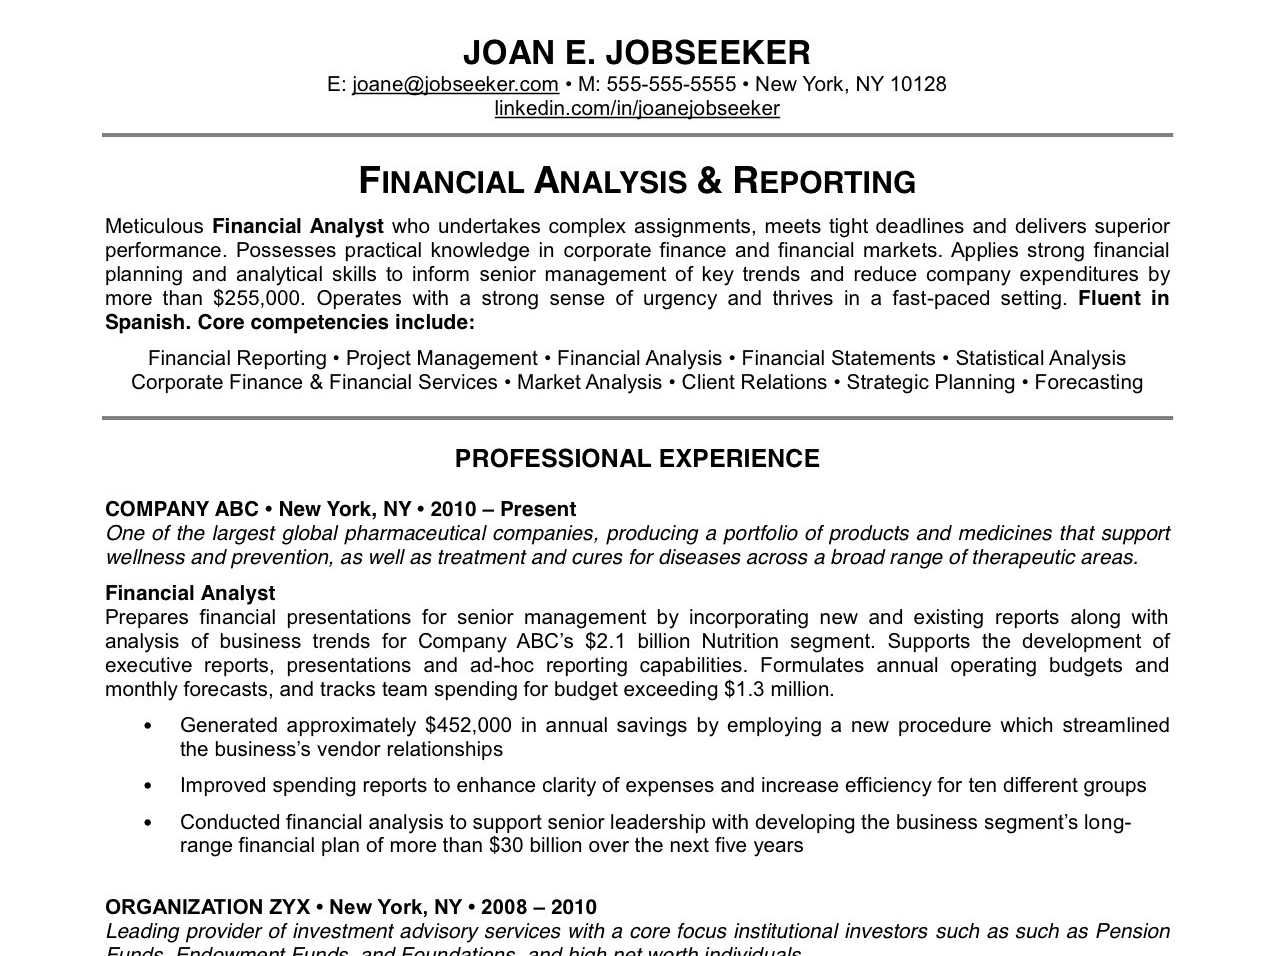 19 Reasons Why This Is An Excellent Resume Resume examples Basic